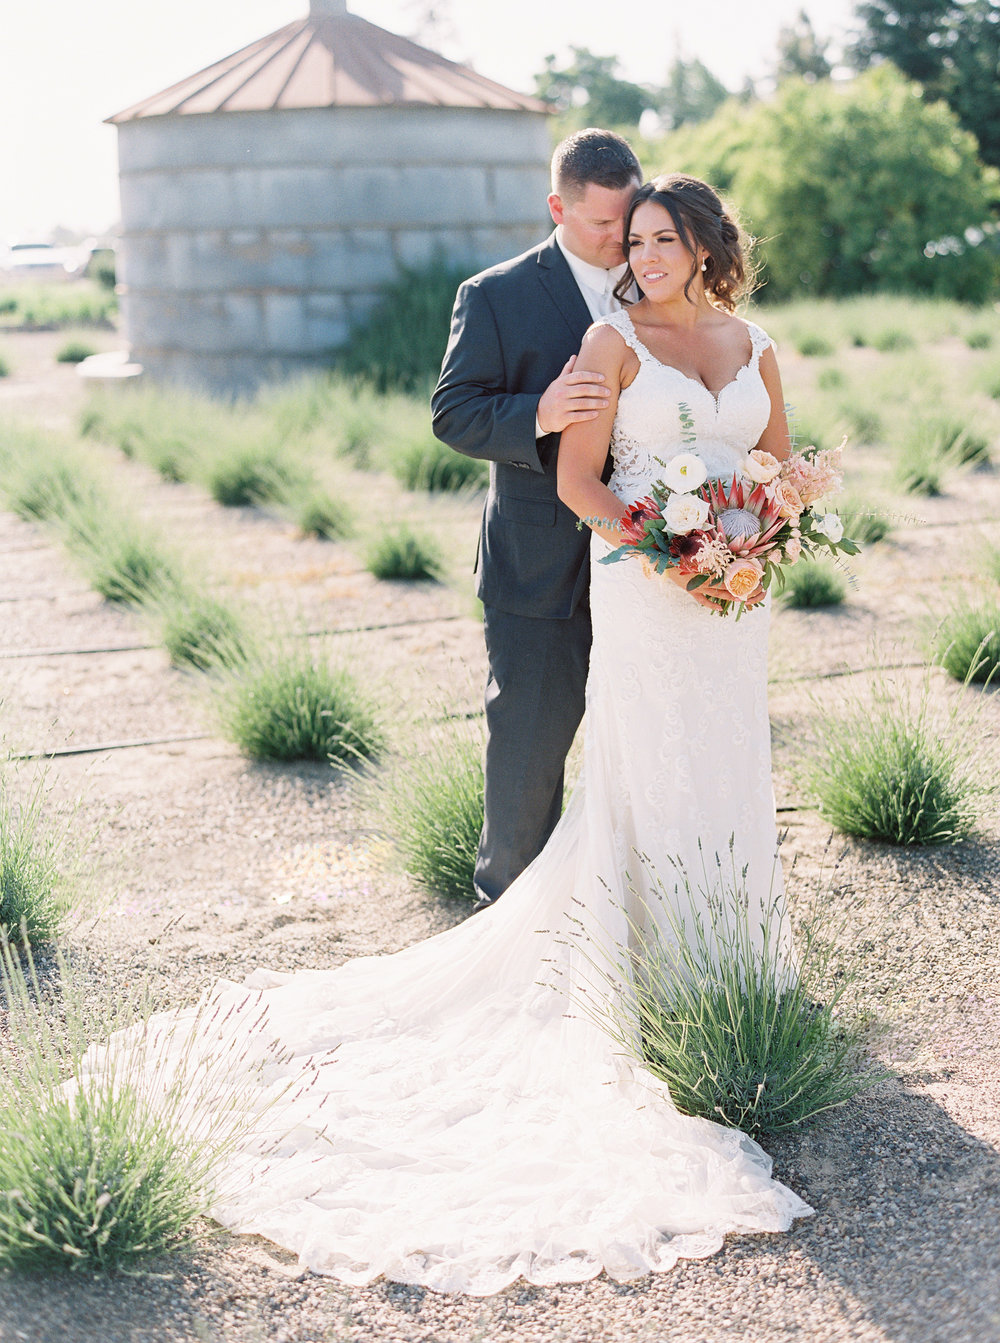 pageo-lavender-farm-wedding-turlock-california-70.jpg